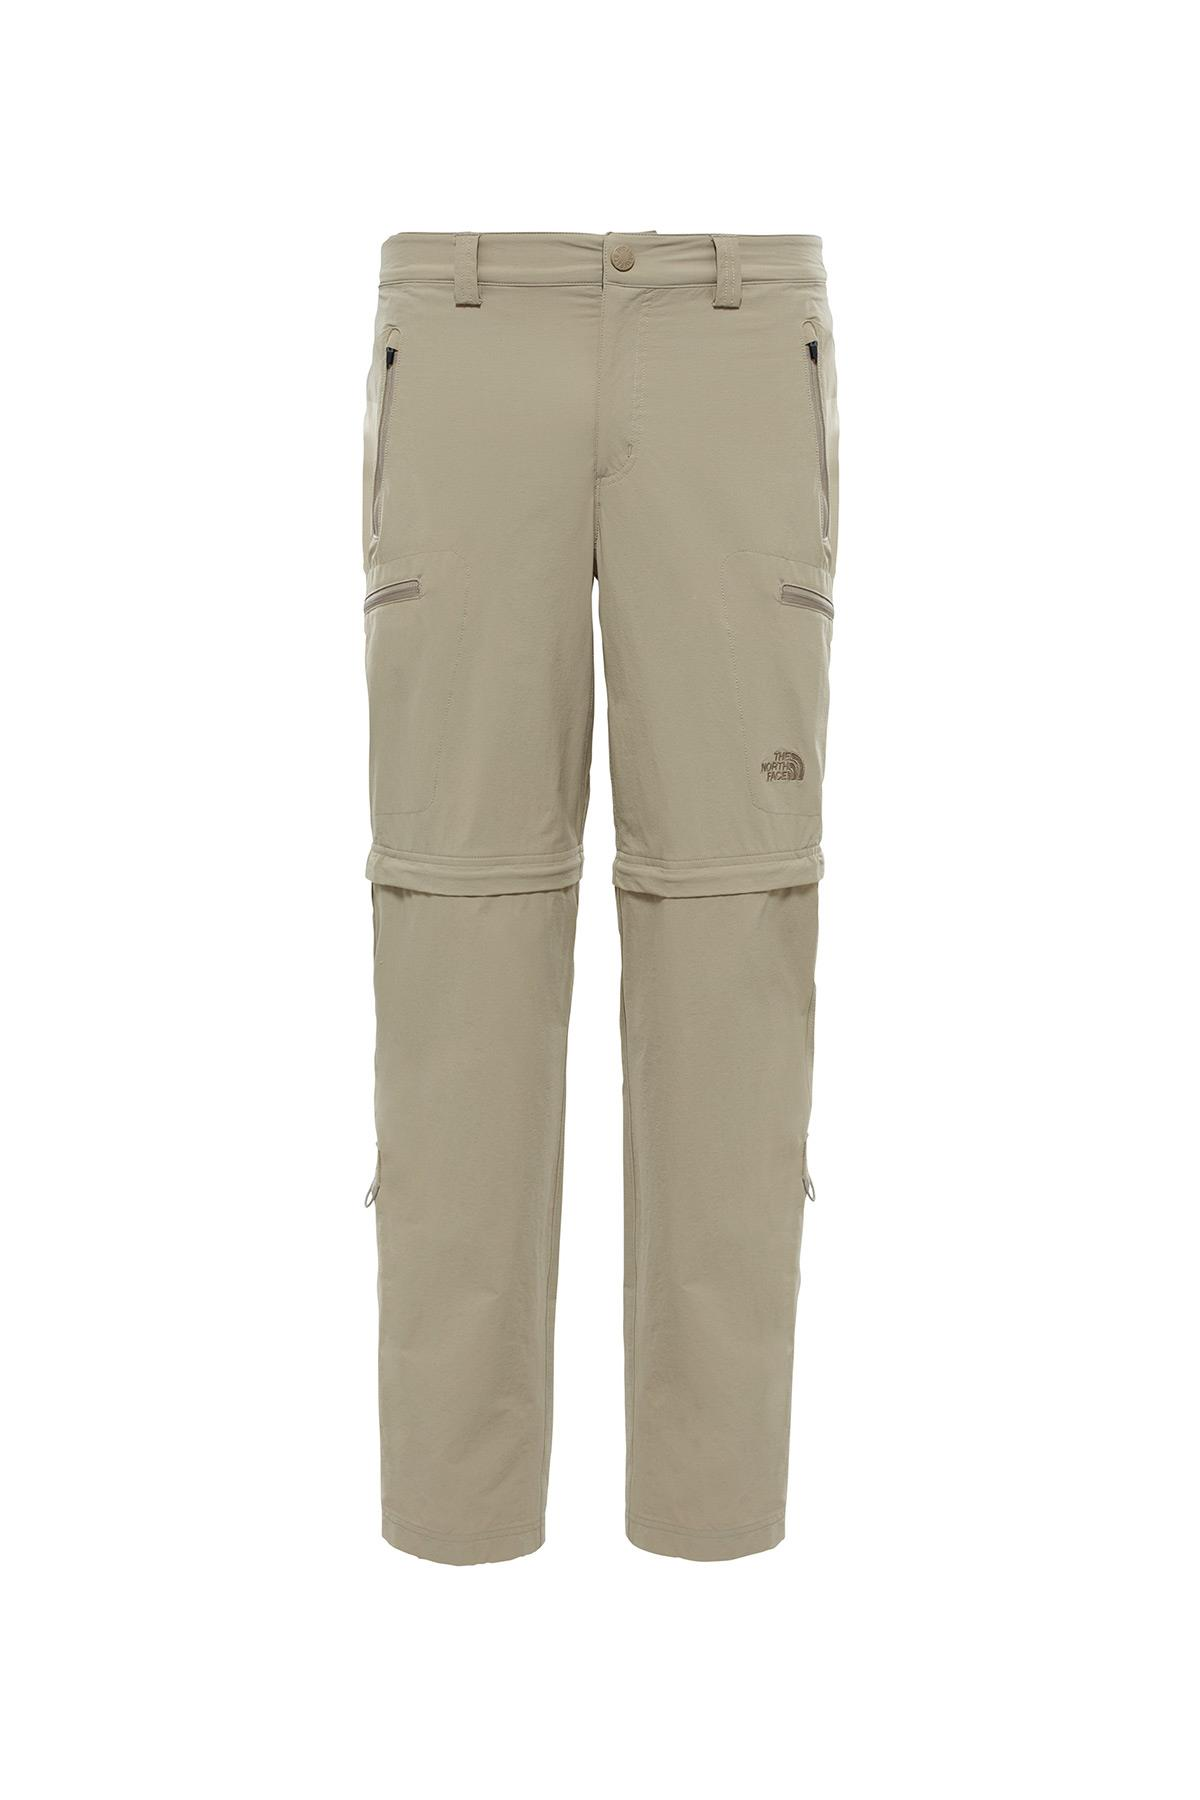 The Northface Erkek Exploration Convertible Pant T0Cl9Q254 Pantolon